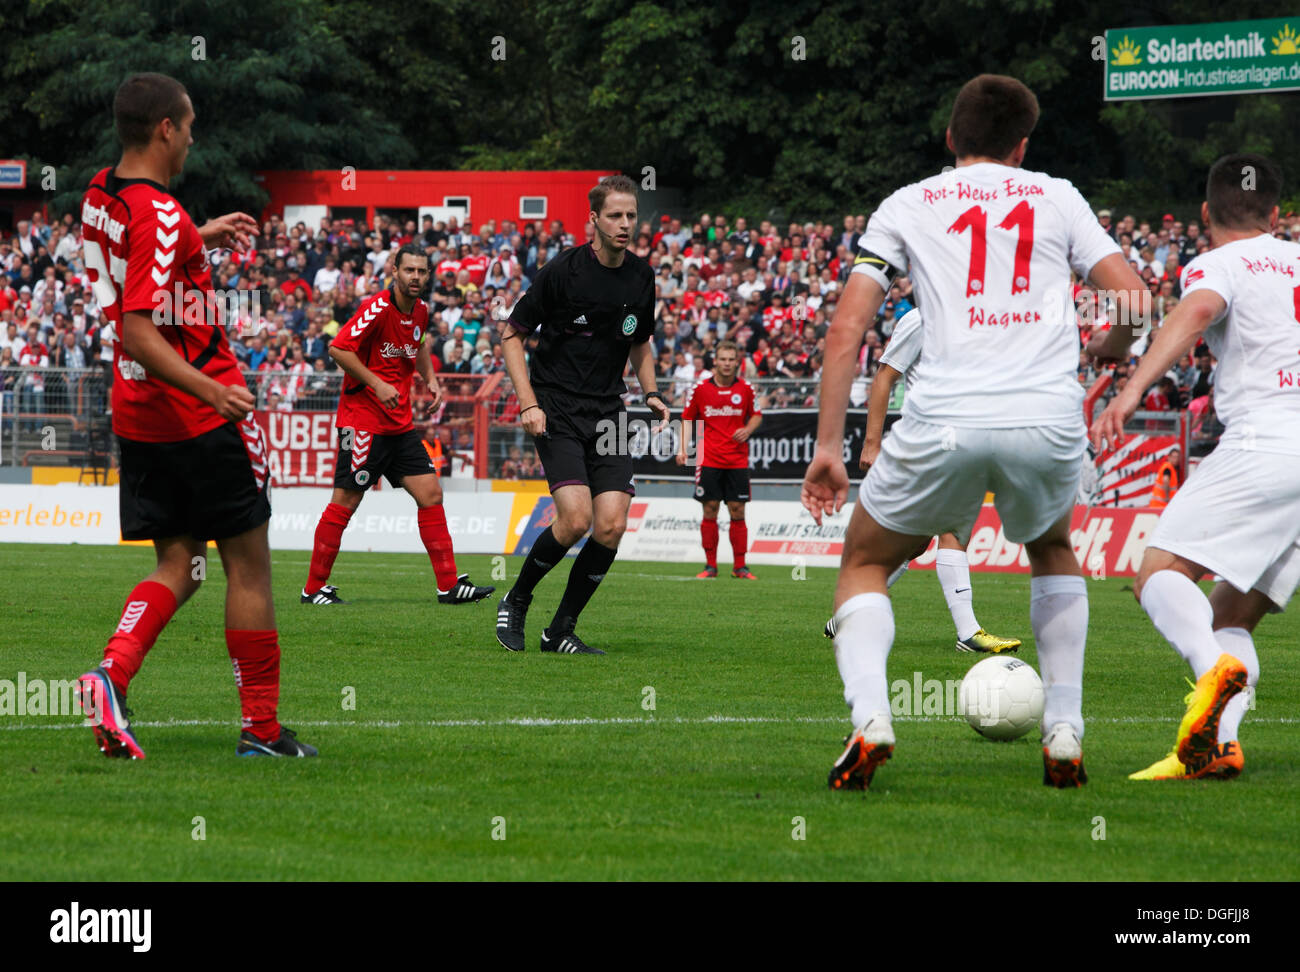 sports, football, Regional League West, 2013/2014, Rot Weiss Oberhausen versus Rot Weiss Essen 2:0, Stadium Niederrhein in Oberhausen, scene of the match, referee Martin Thomsen in the thick of the action - Stock Image